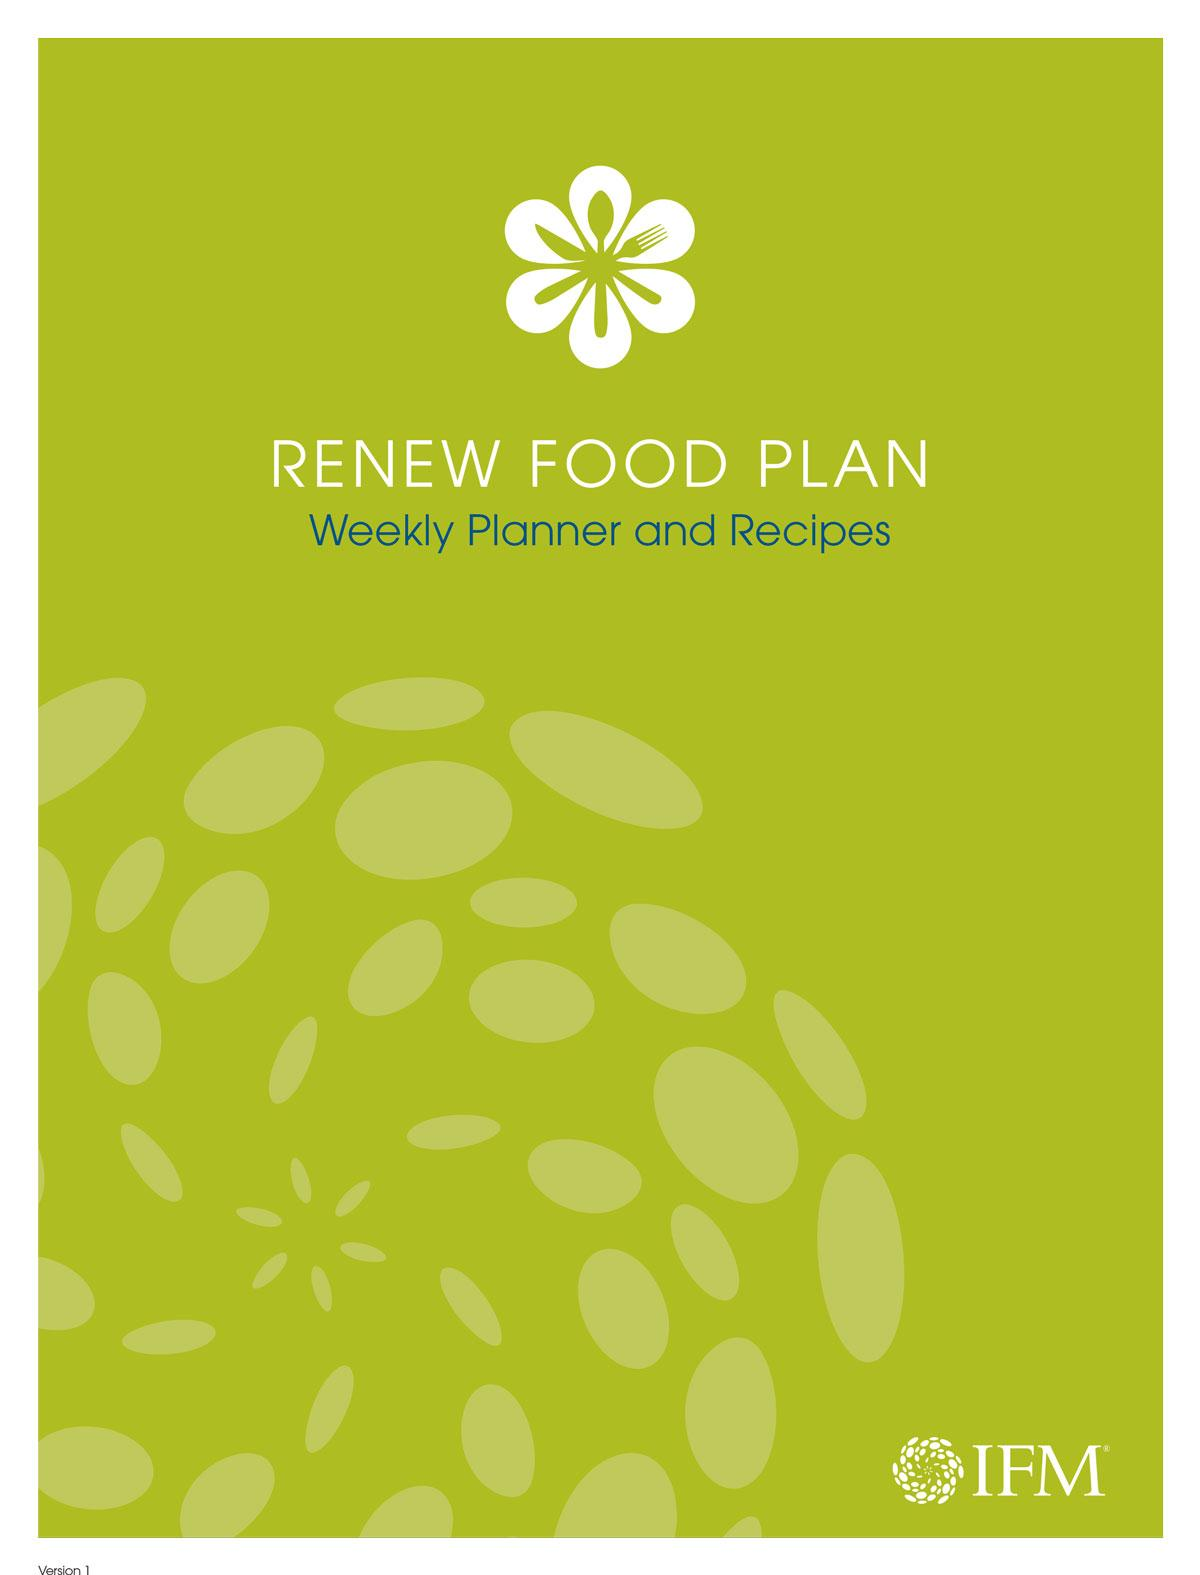 ReNew Food Plan Weekly Planner